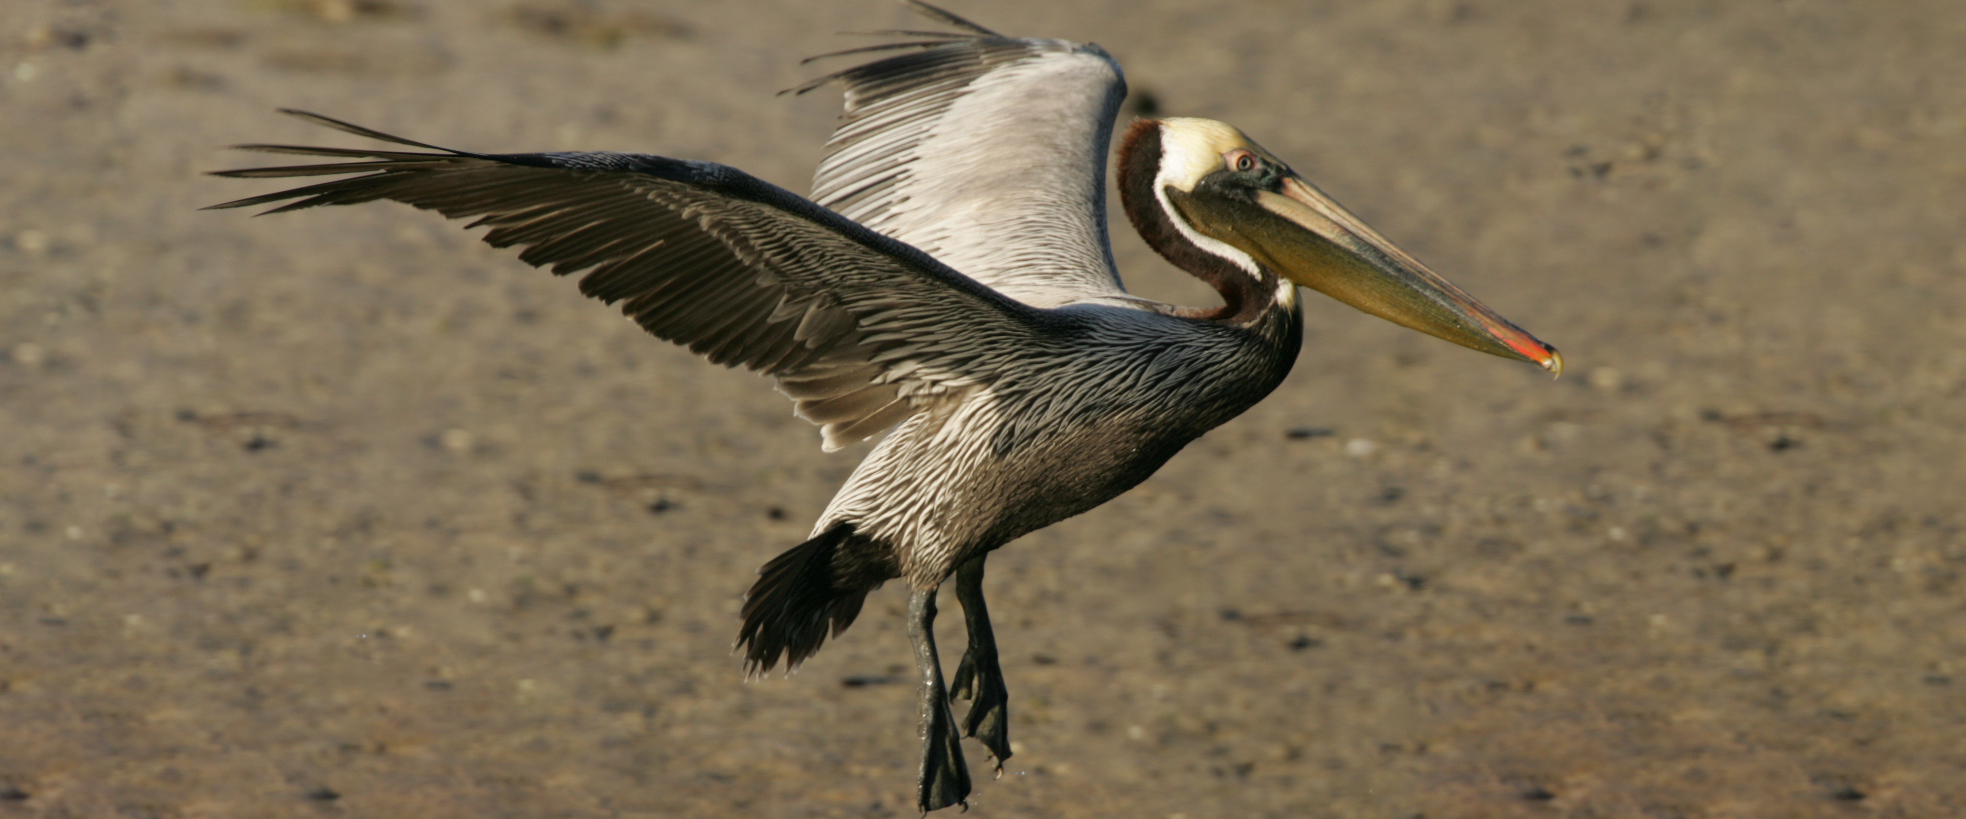 A Brown Pelican lands on the restored Queen Bess Island.